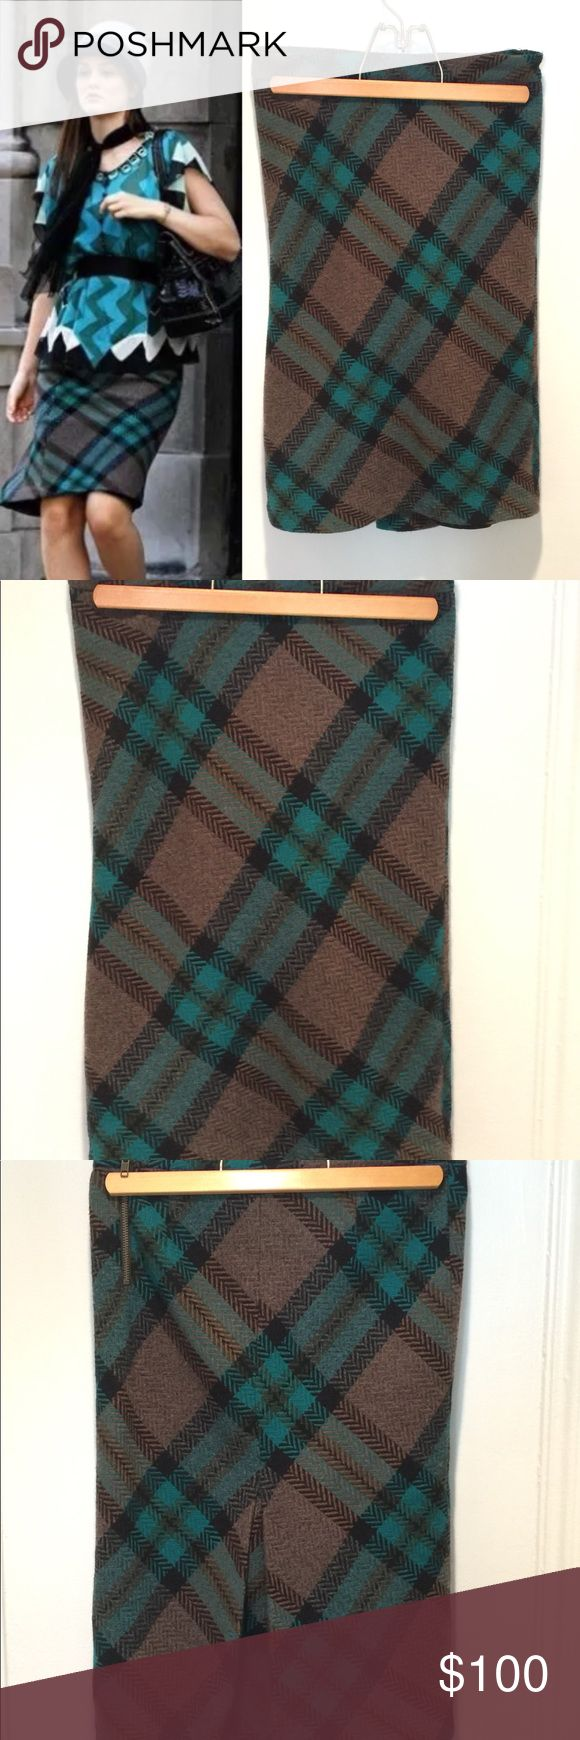 """L.A.M.B. Plaid skirt 2 Blair Waldorf Gossip Girl Hey upper east siders! For sale is a L.A.M.B. plaid pencil skirt, size 2, seen on Blair Waldorf in Gossip Girl episode 2x06: New Haven Can Wait. 100% lambwool. Fully lined. Approx measurements laying flat: waist - 13.5"""", length - 23"""". Good used condition! Original retail was $285, but feel free to make me an offer! Check out my other listings for more great Gossip Girl items. L.A.M.B. Skirts Pencil"""